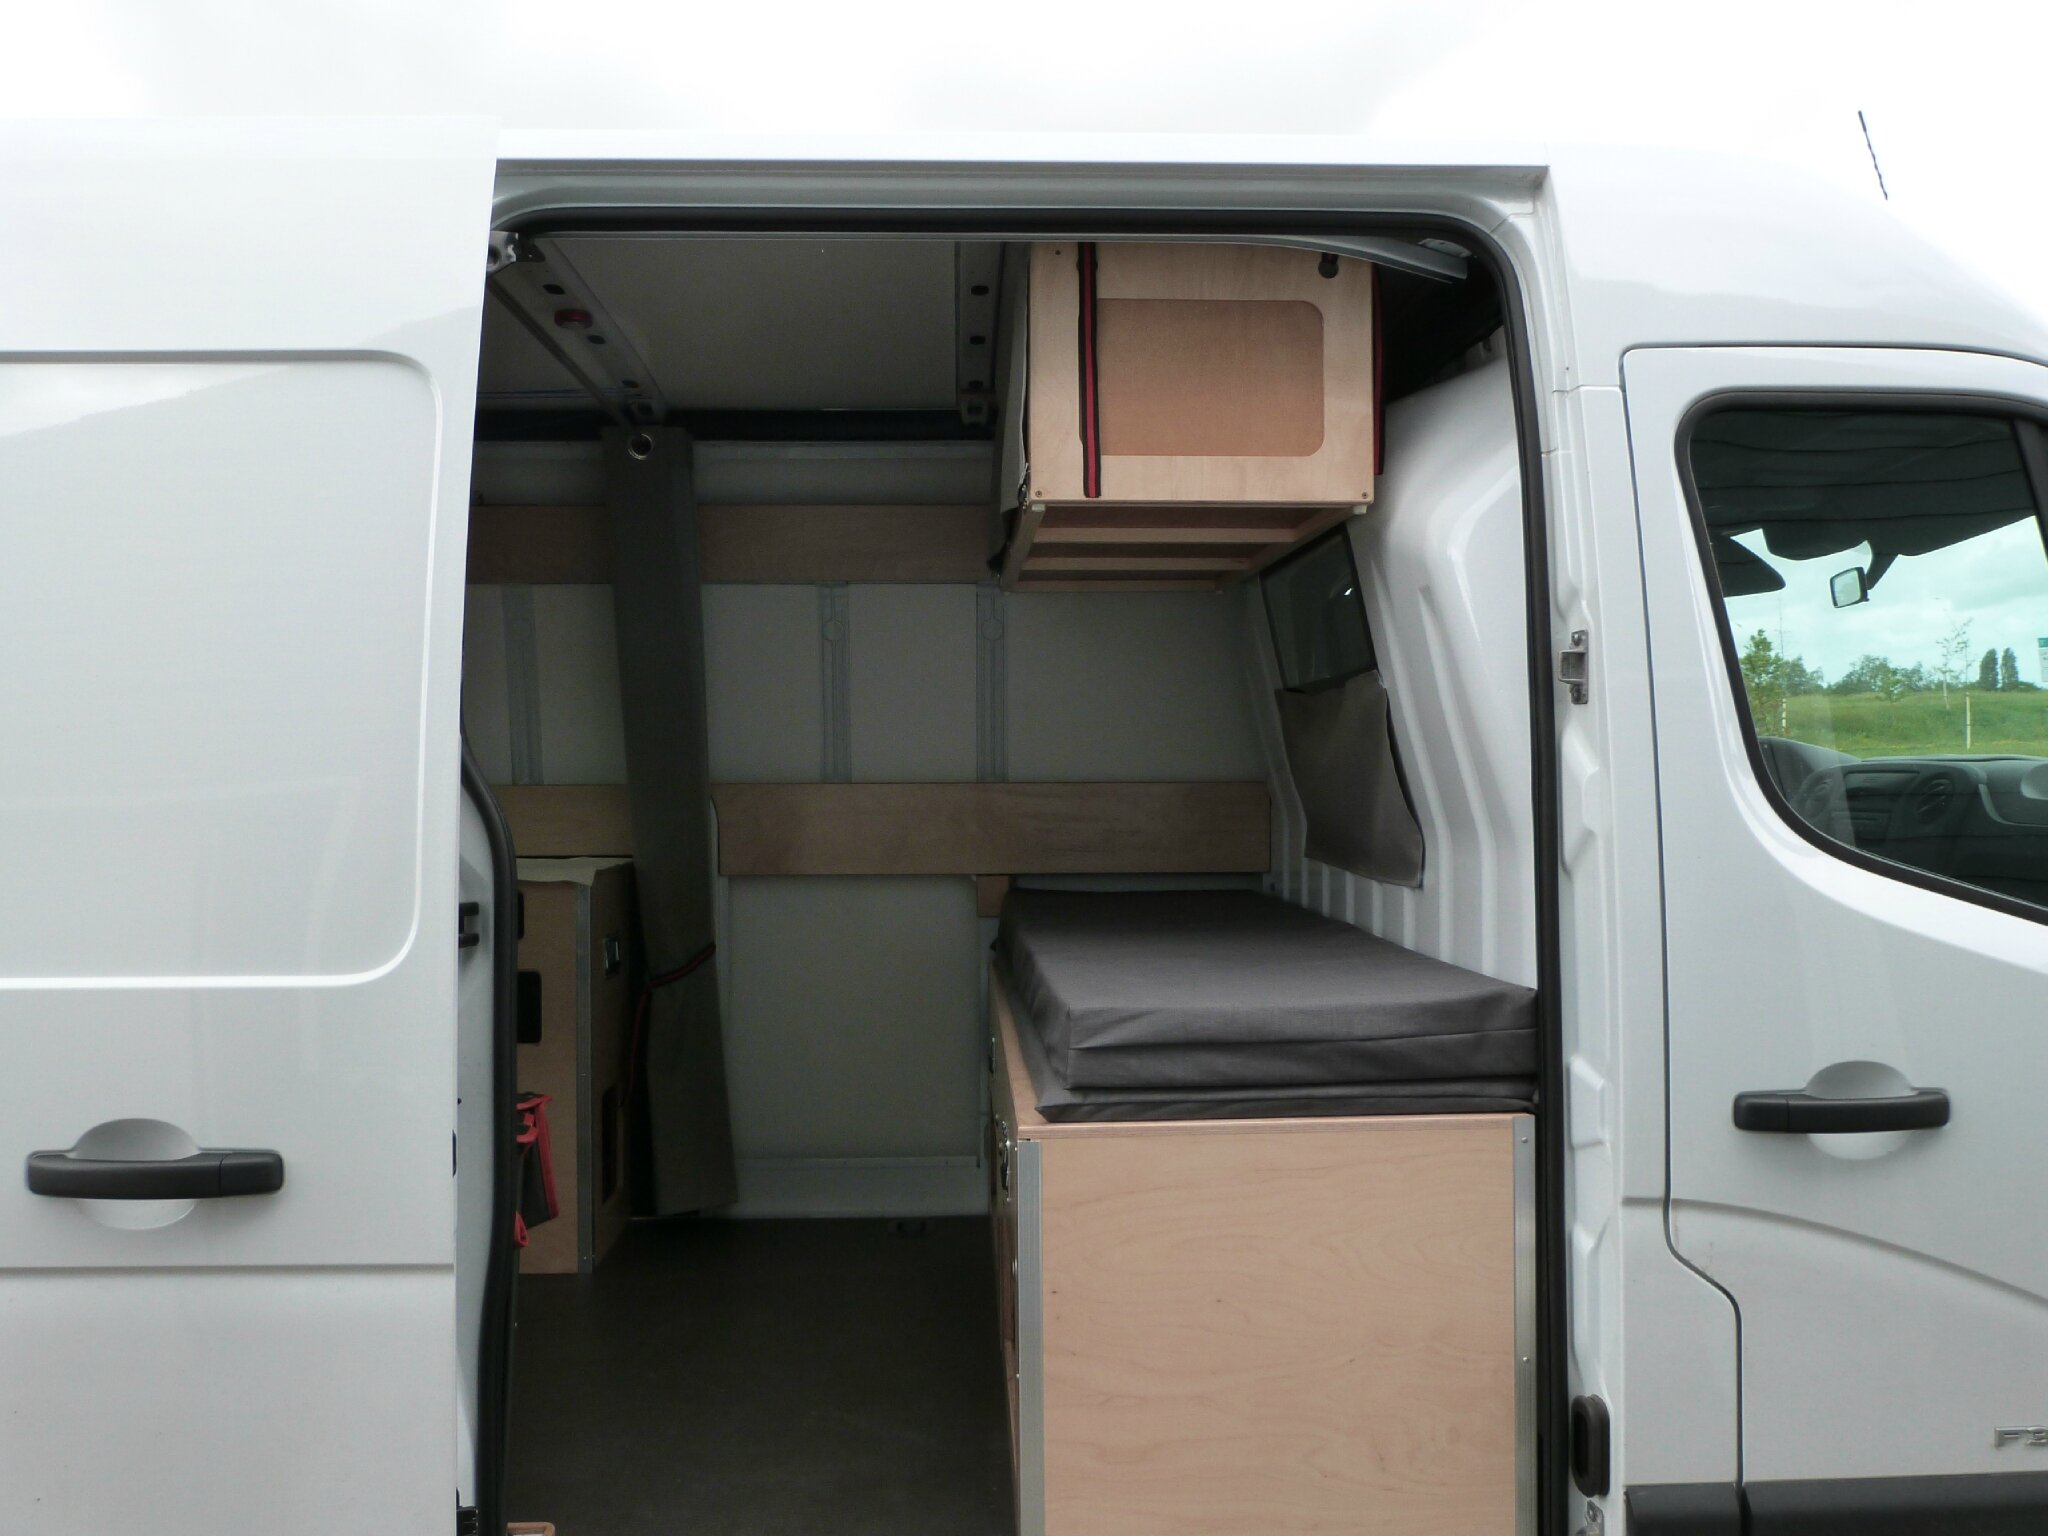 montage des meubles transformer un renault master iii en camping car. Black Bedroom Furniture Sets. Home Design Ideas